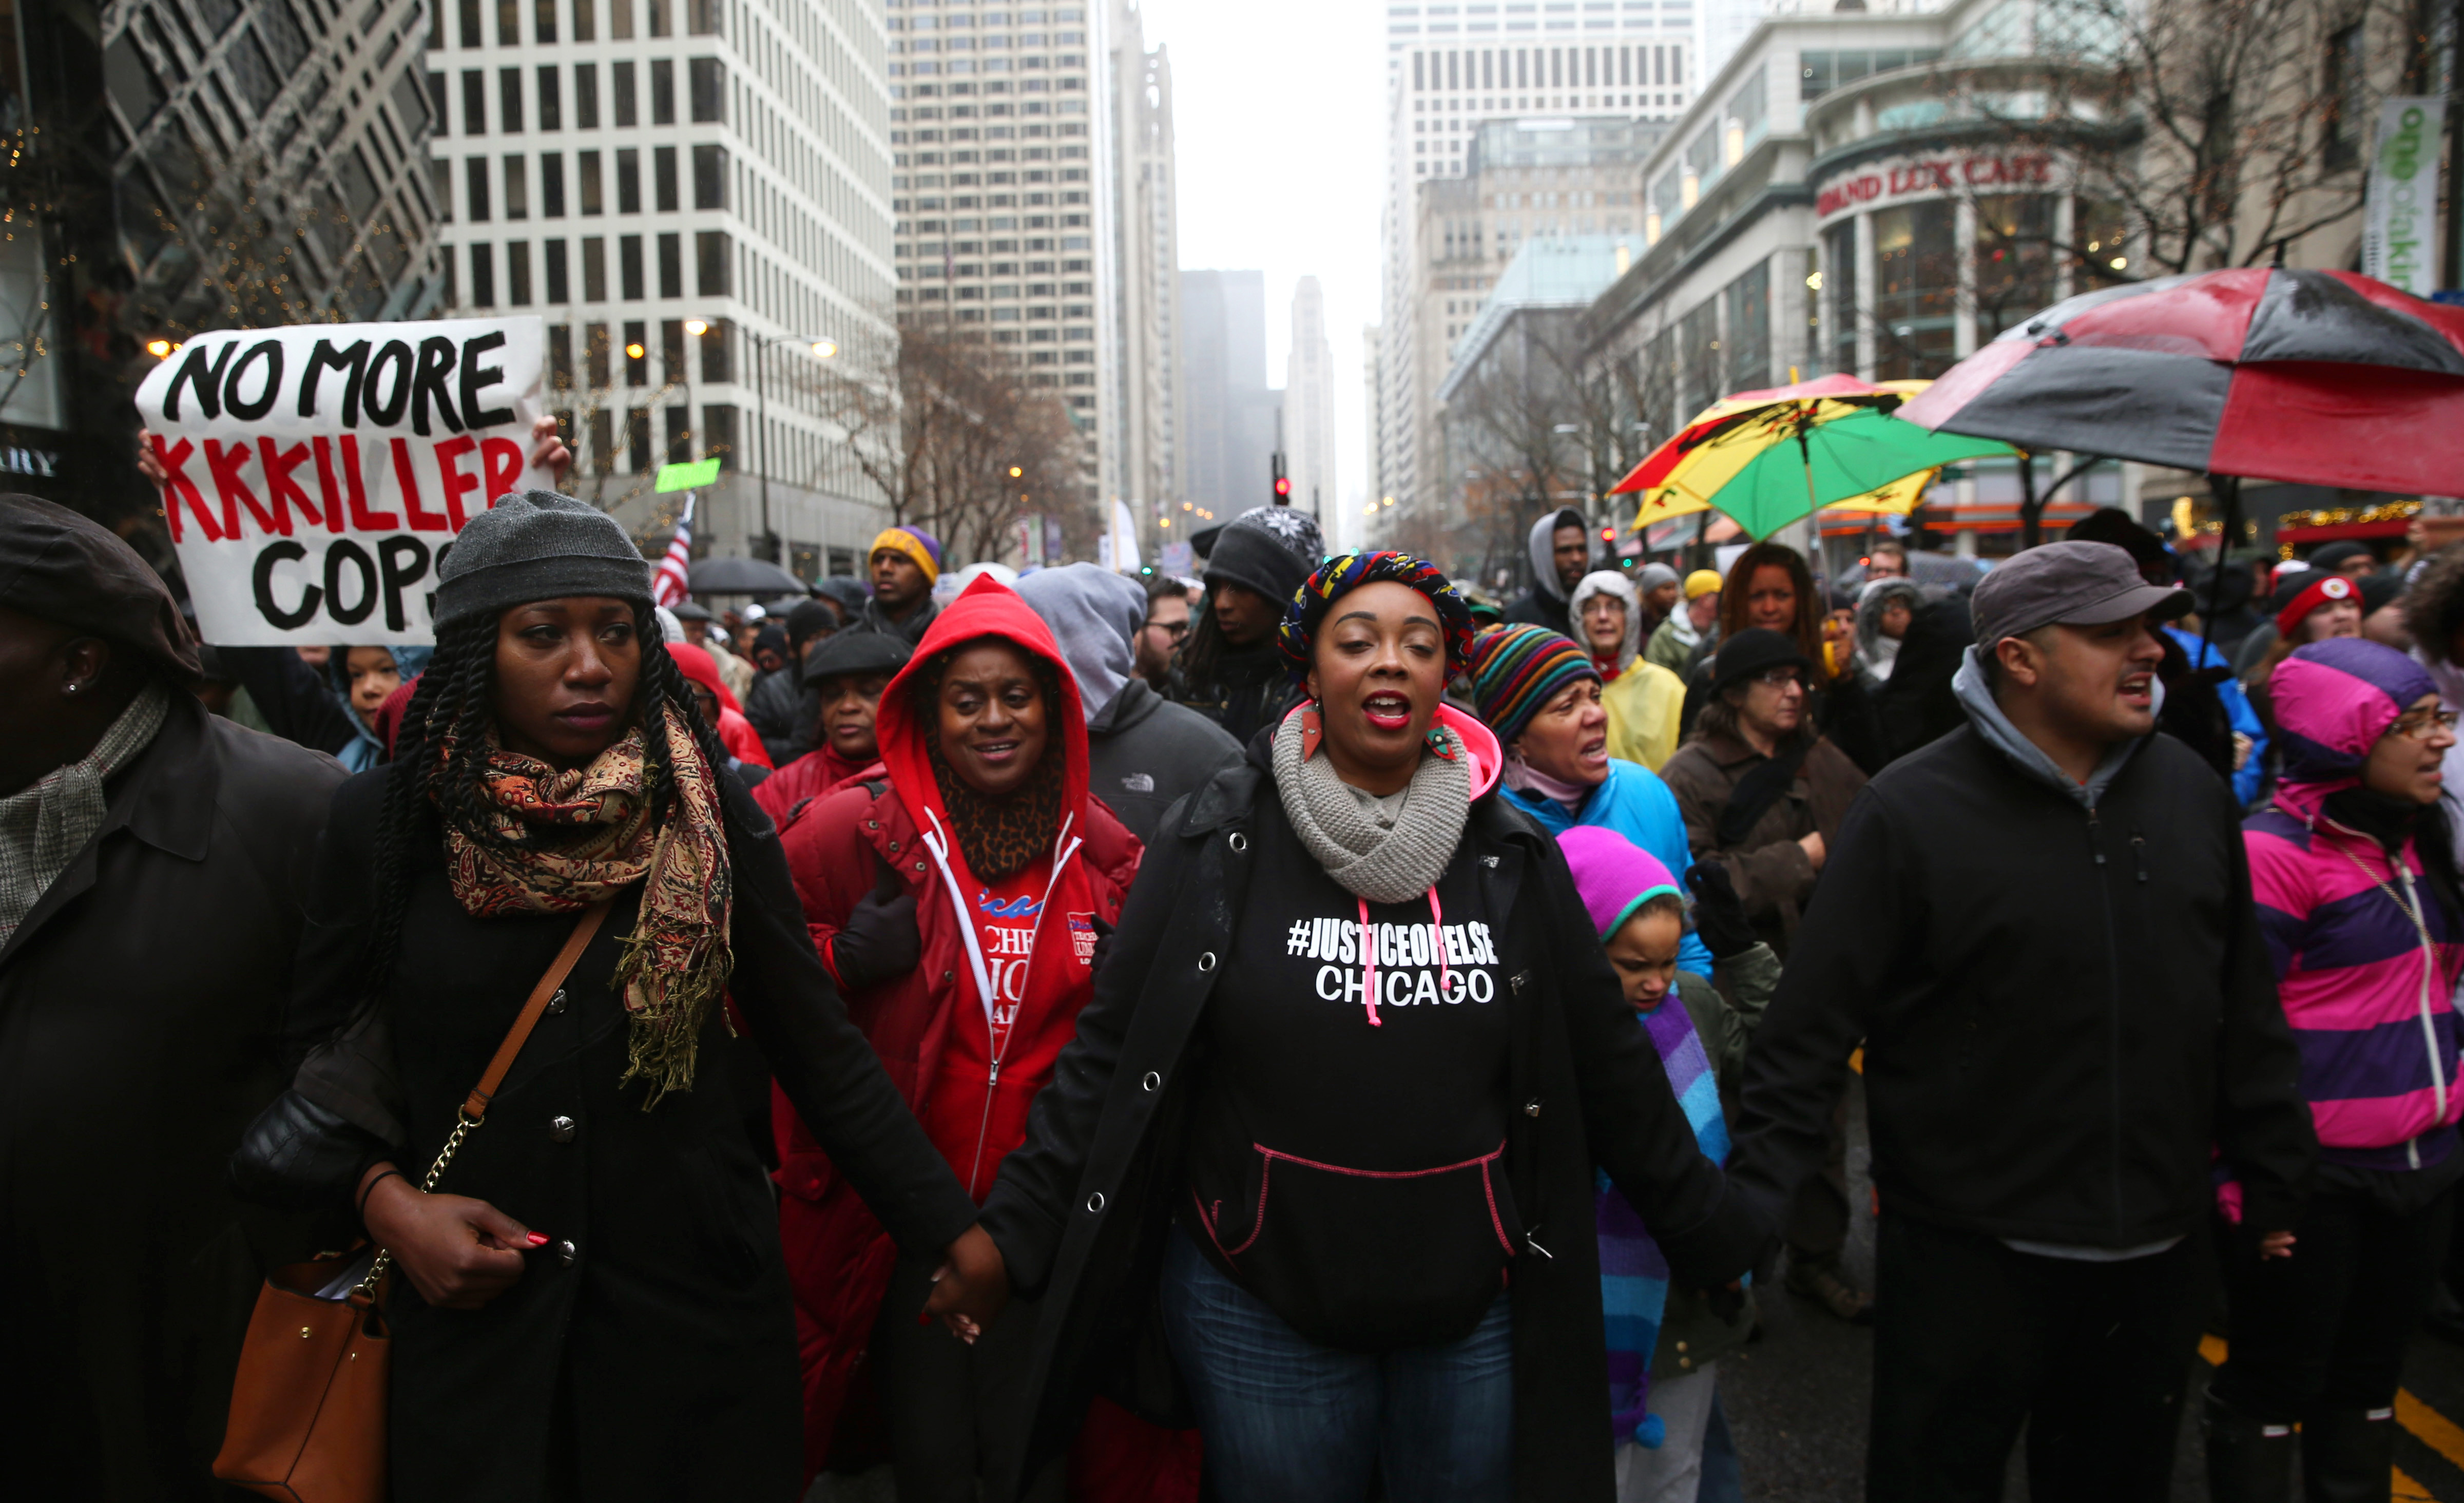 'Black Friday' protest of police shooting shuts main Chicago shopping street